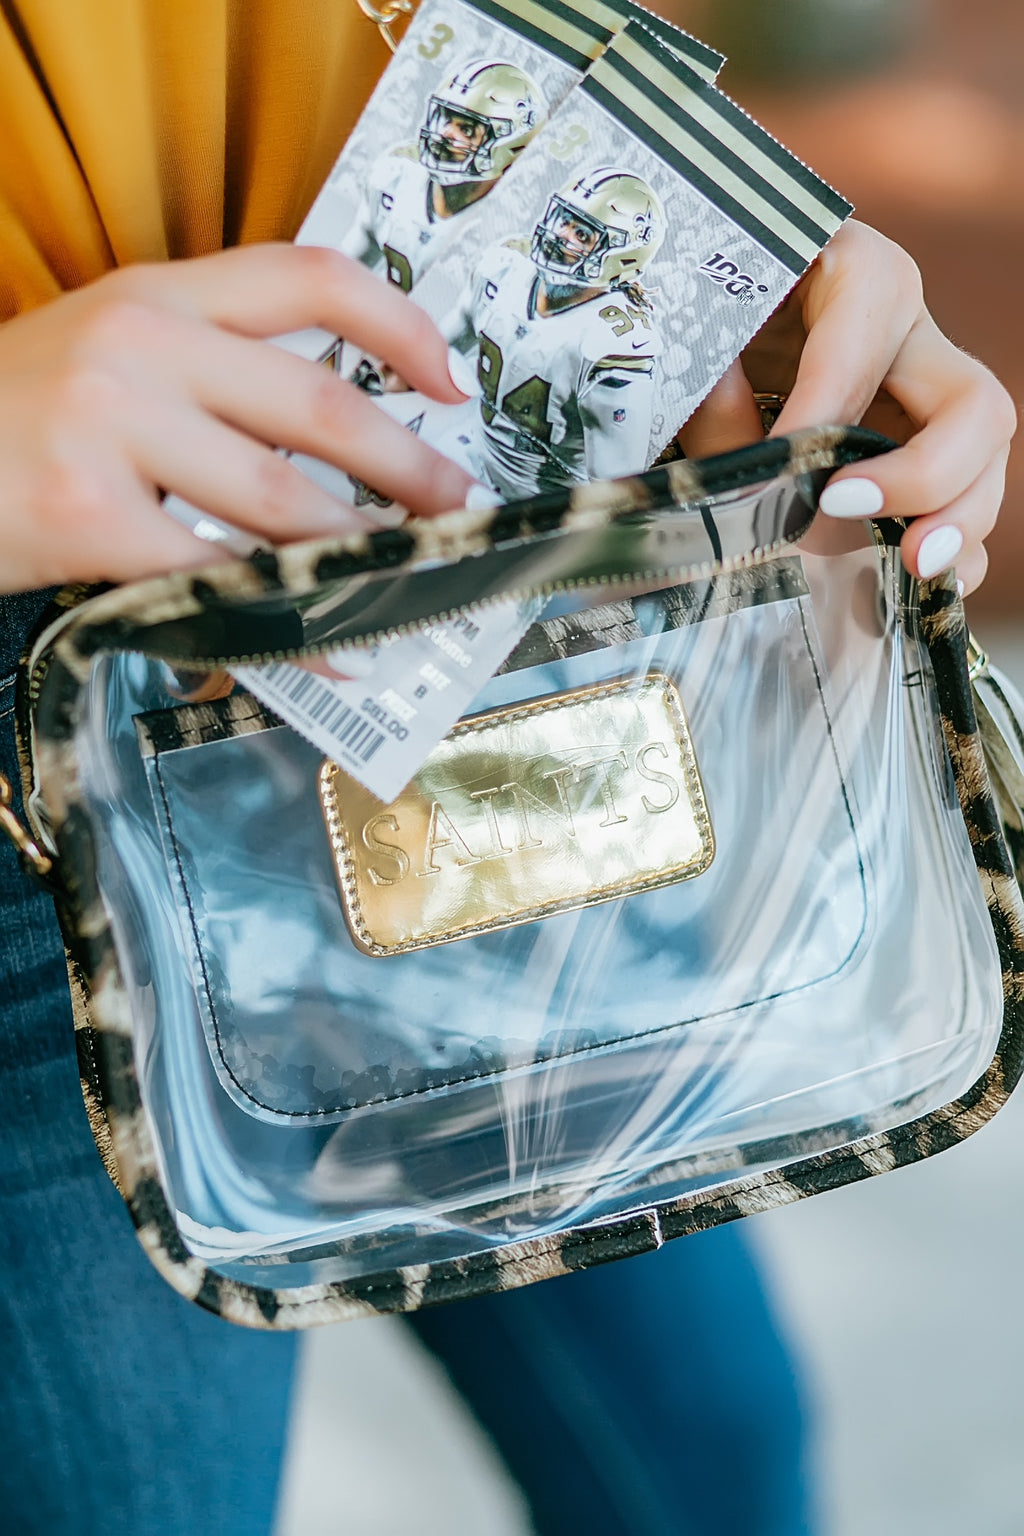 Clear Saints Game Day Bag - Marcella